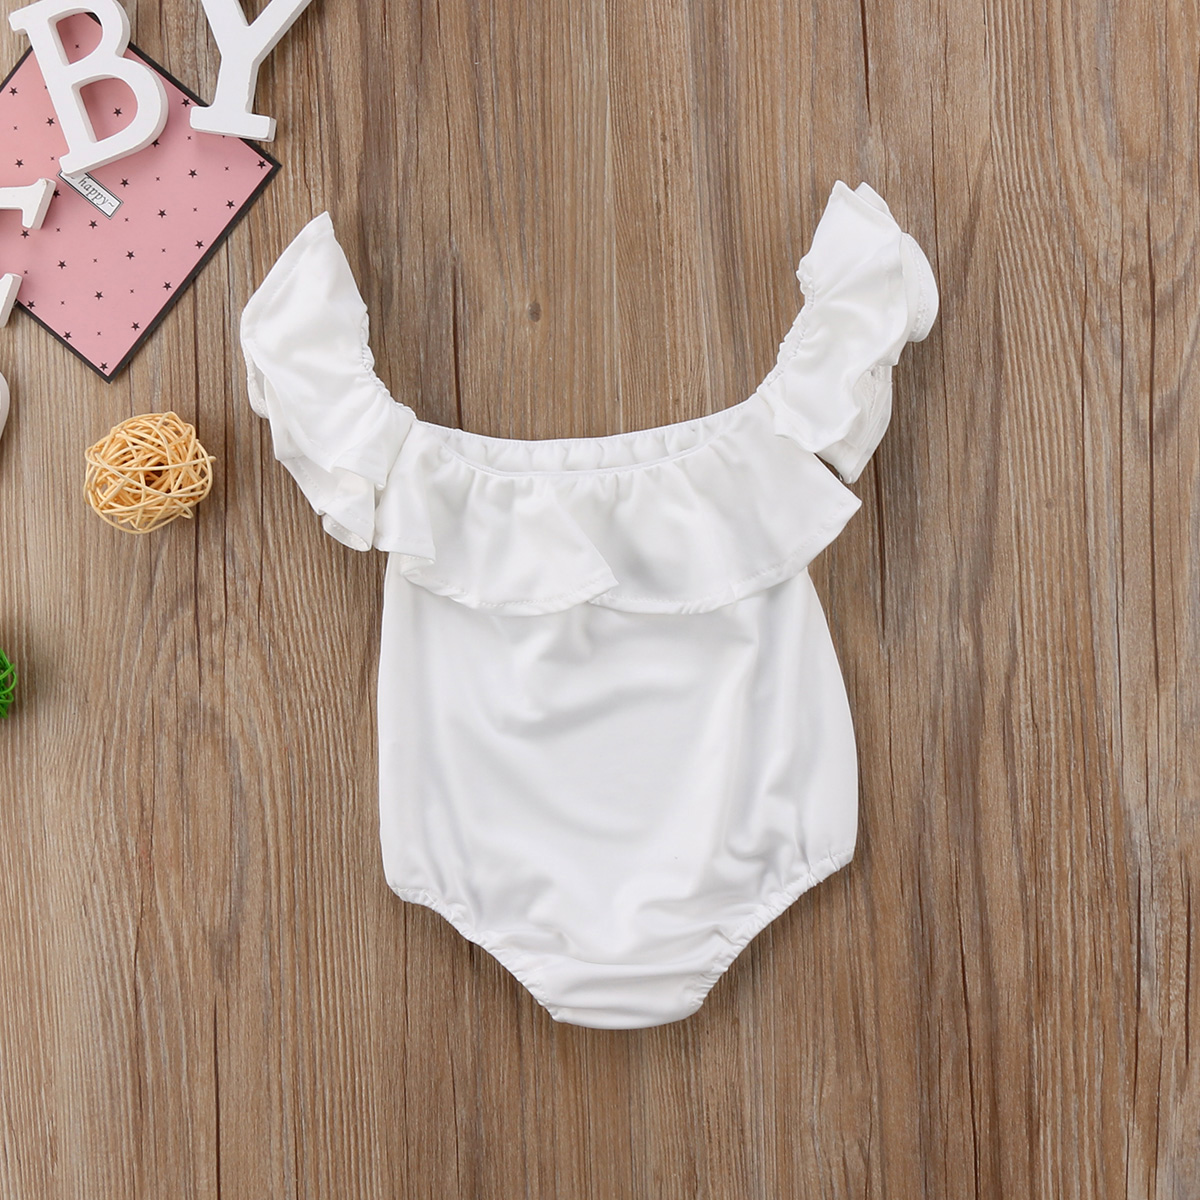 a3c8f57e465 Pudcoco Newborn Baby Girl Clothes 2018 New Ruffle Off Shoulder Romper  Princess Girls White Jumpsuit Baby girls clothing-in Rompers from Mother    Kids on ...